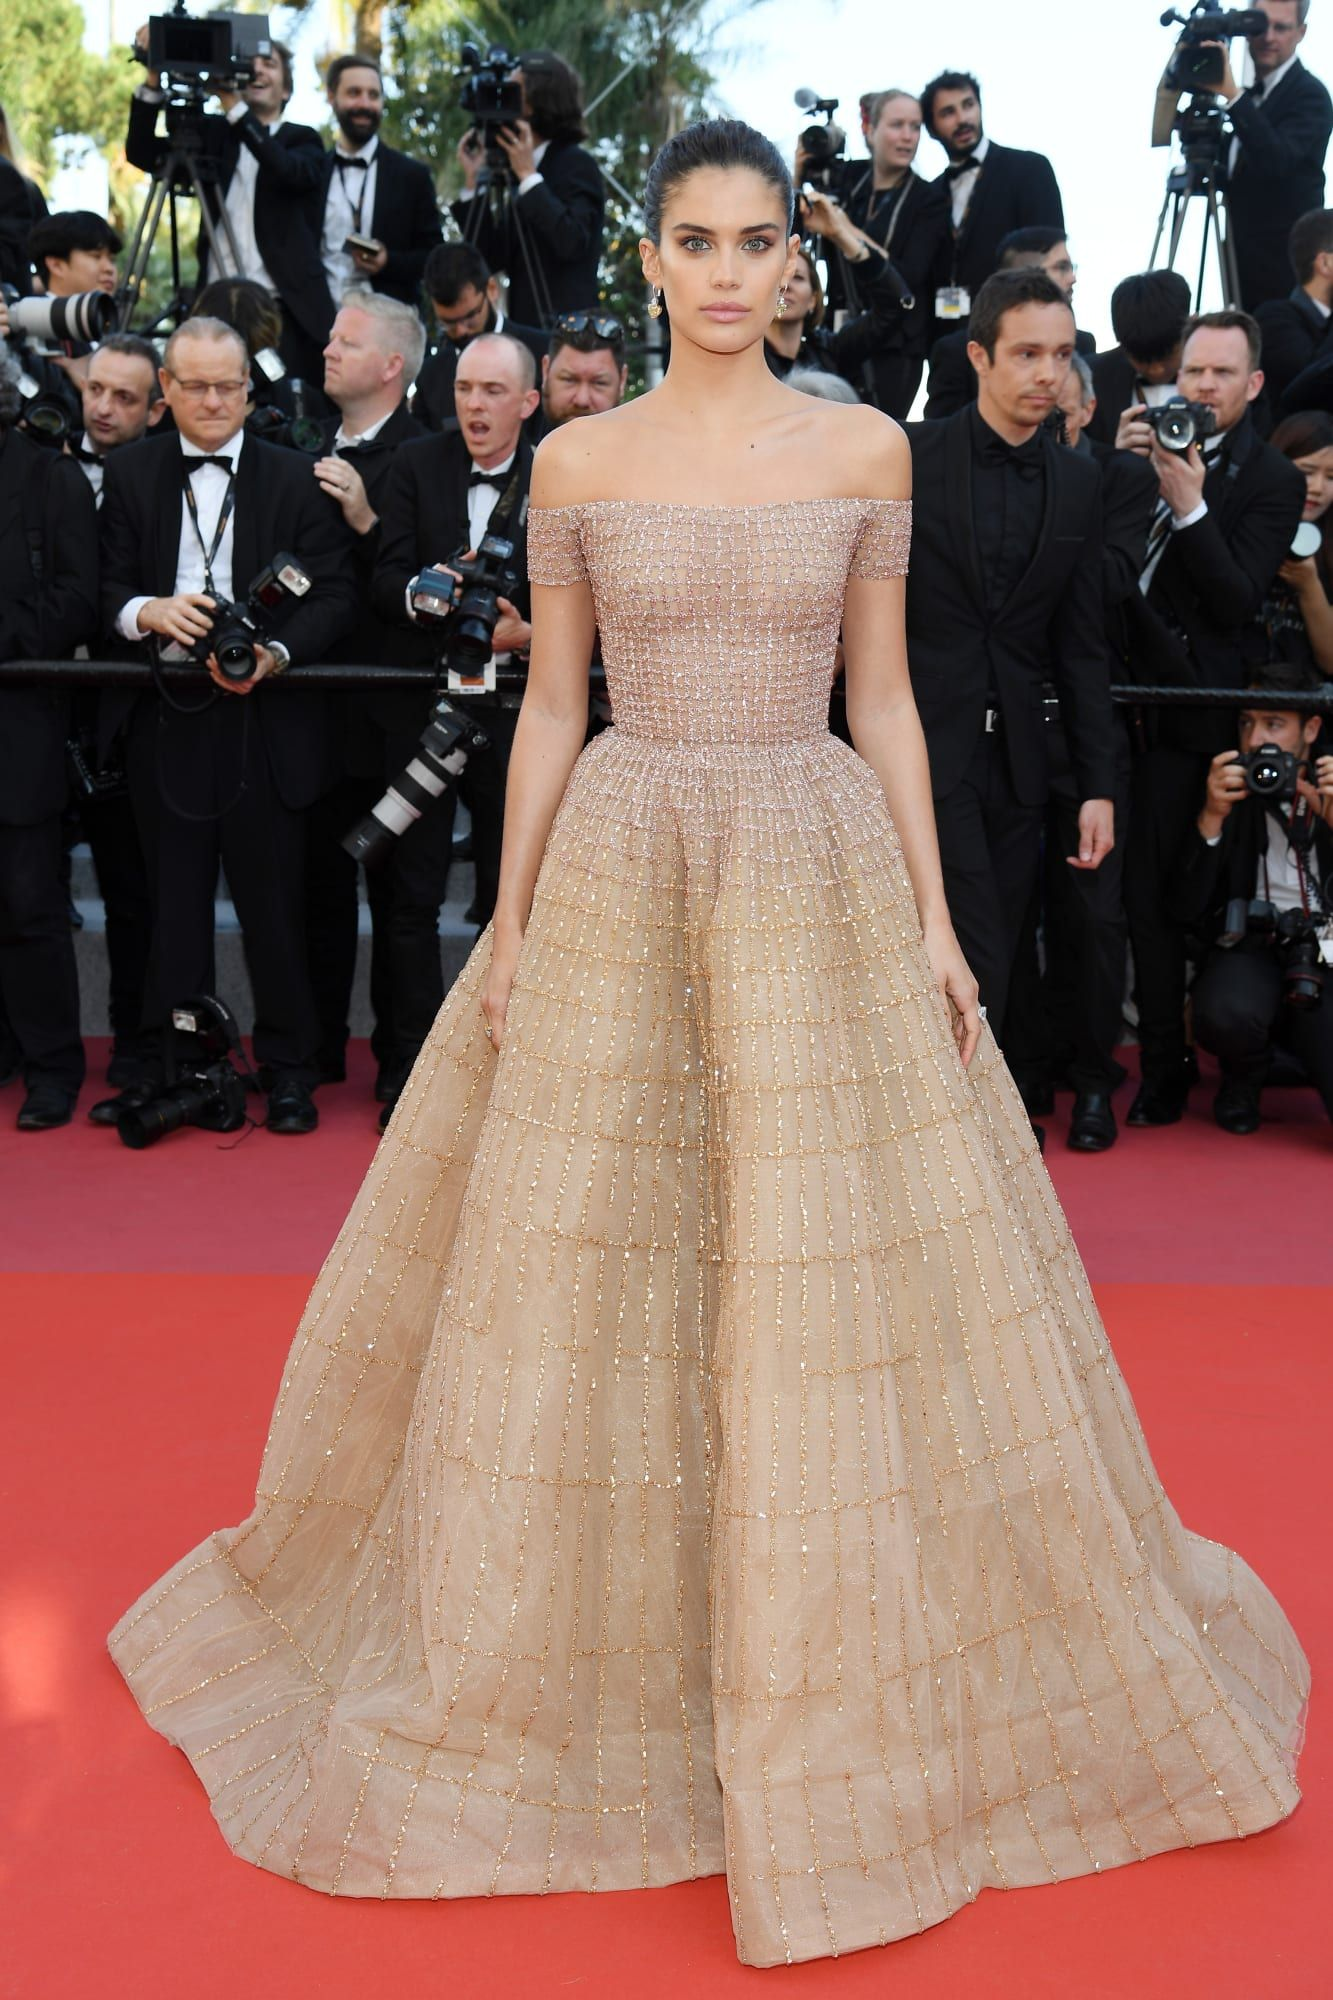 Cannes Roter Teppich 2018 See The Best Red Carpet Looks From The 2018 Cannes Film